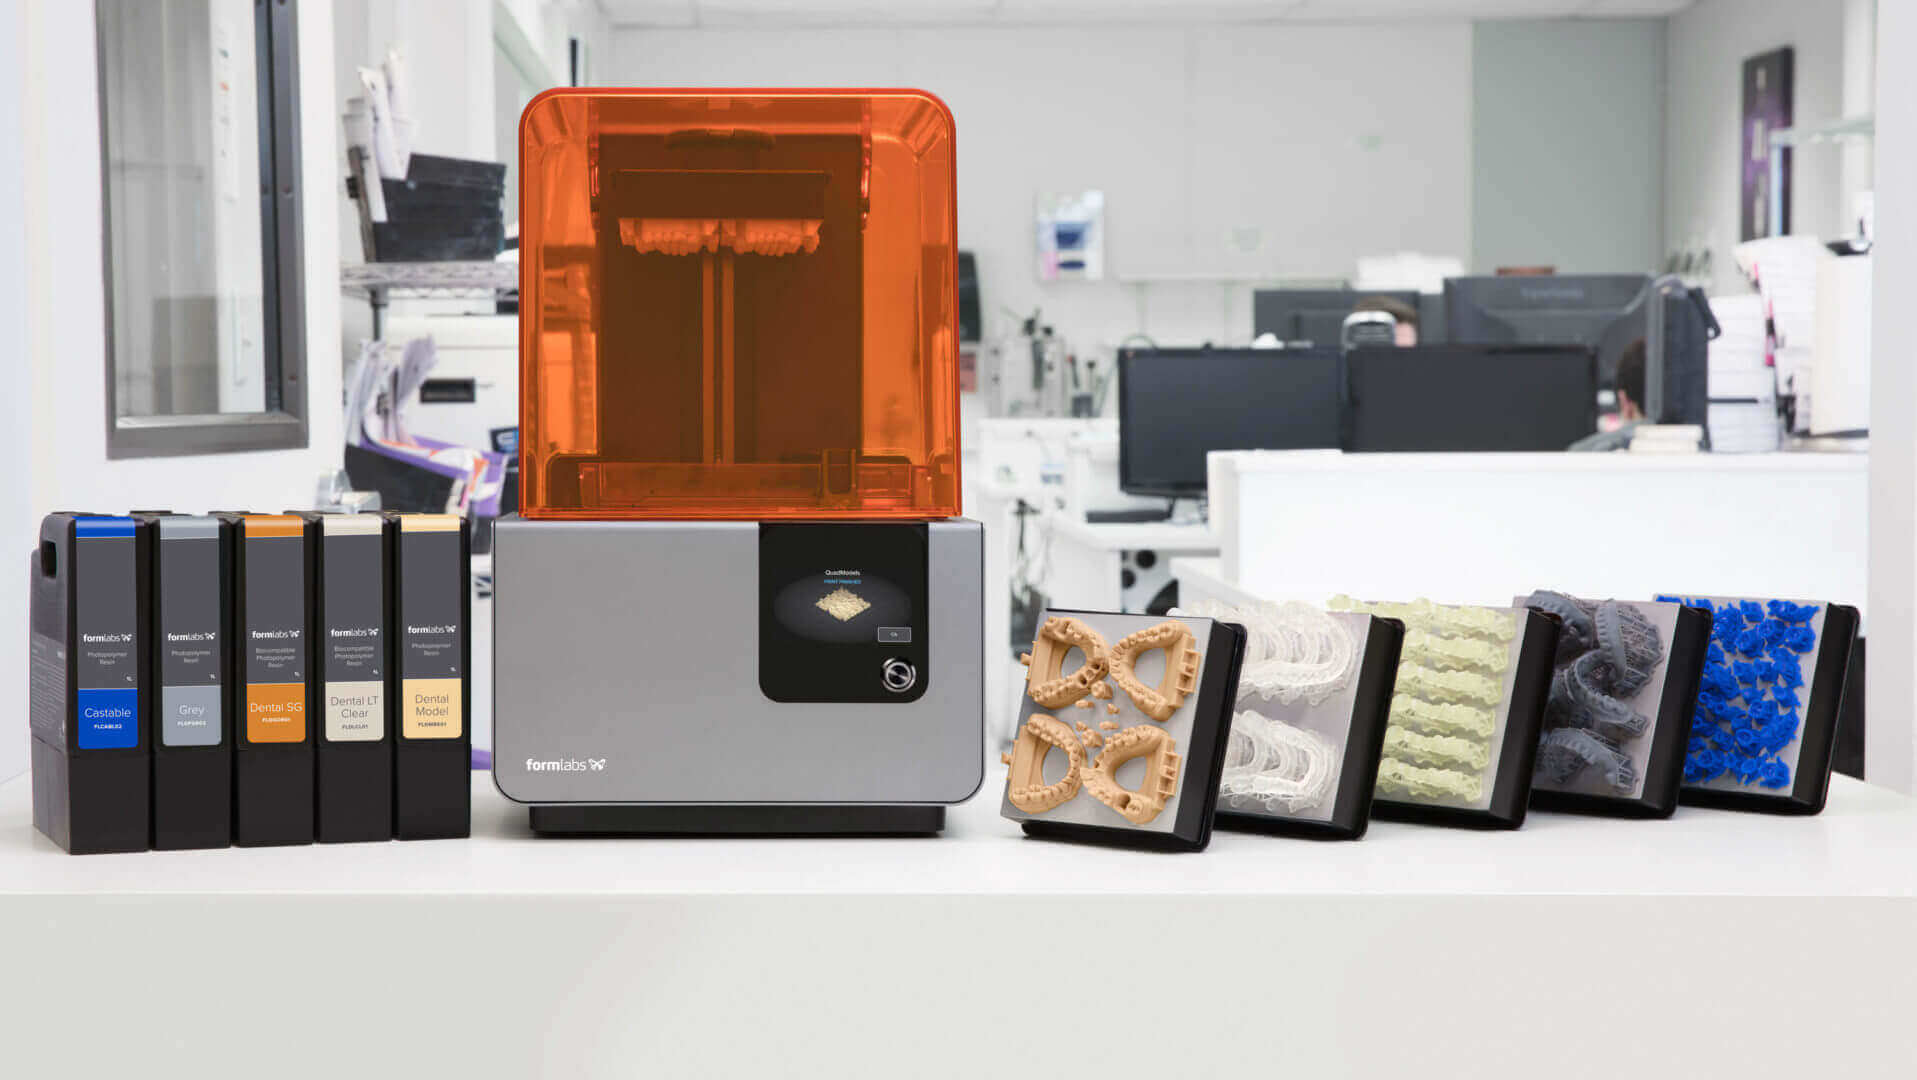 Formlabs Announces 2 New Materials for Dentistry, Partnership with 3Shape | All3DP